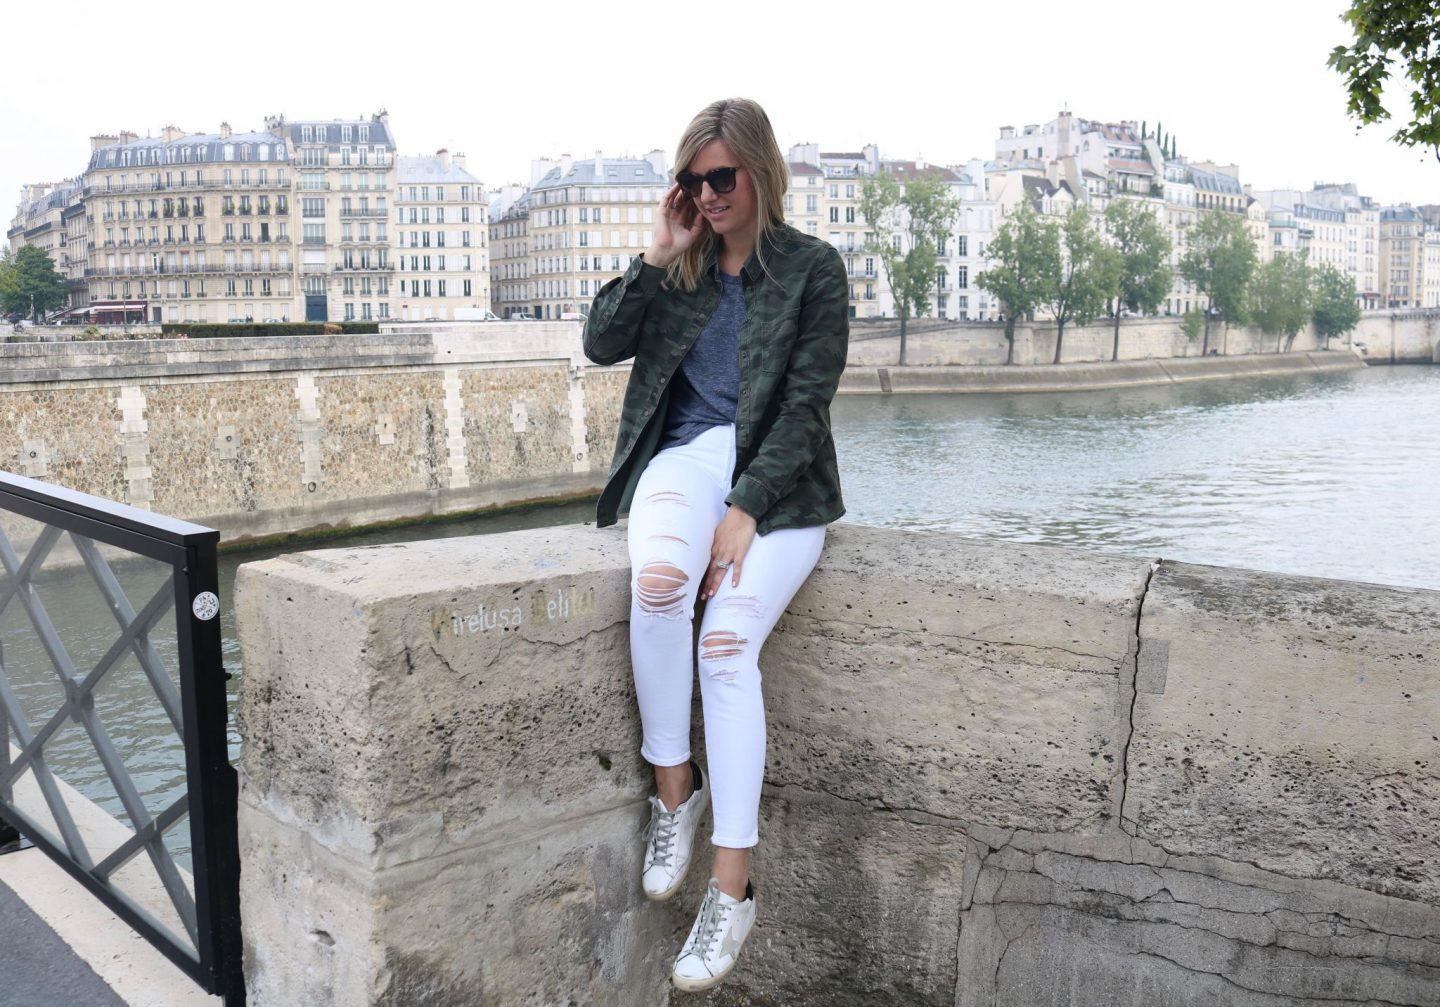 notredame,streetstyleparis,whitedenim,camojacket